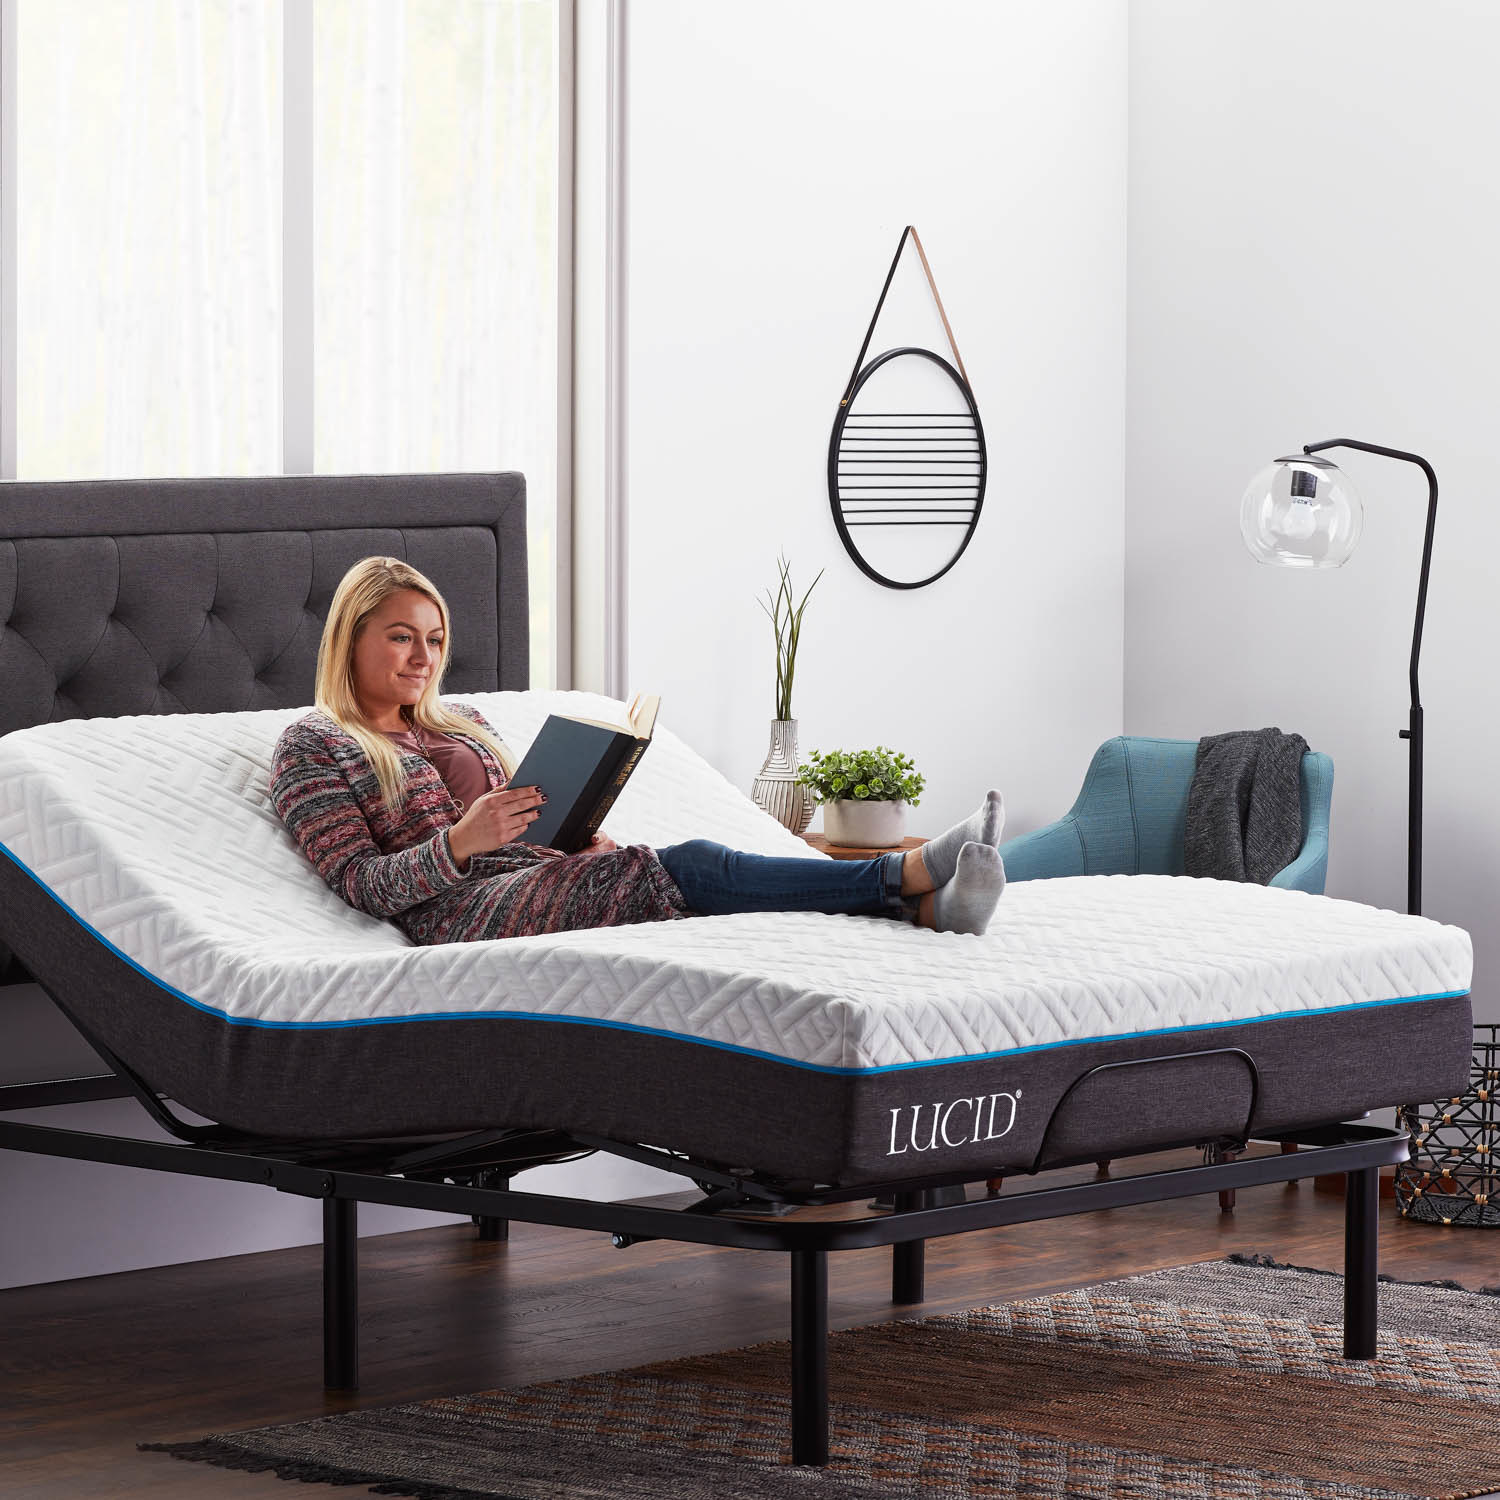 The adjustable bed in use